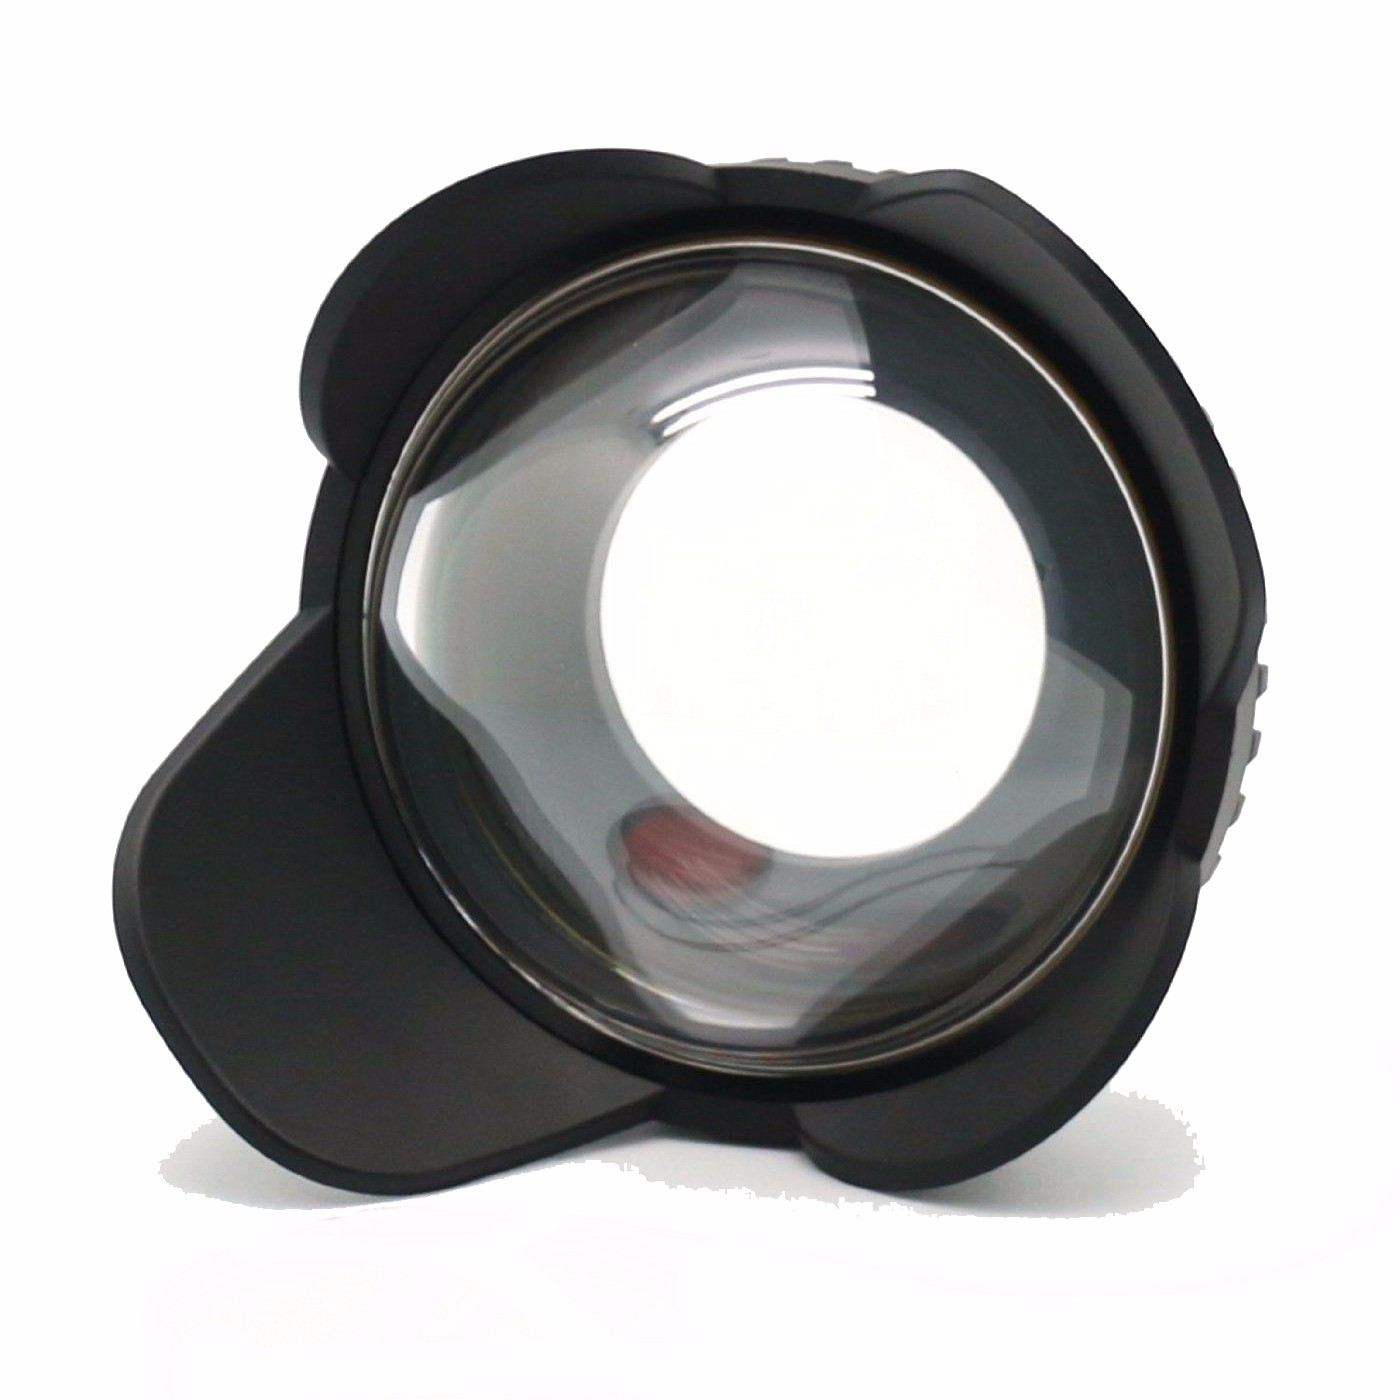 MEIKON Underwater Camera 200mm Fisheye Wide Angle Lens Dome Port t for Camera Housing 67mm Round Adapter in Lens Adapter from Consumer Electronics